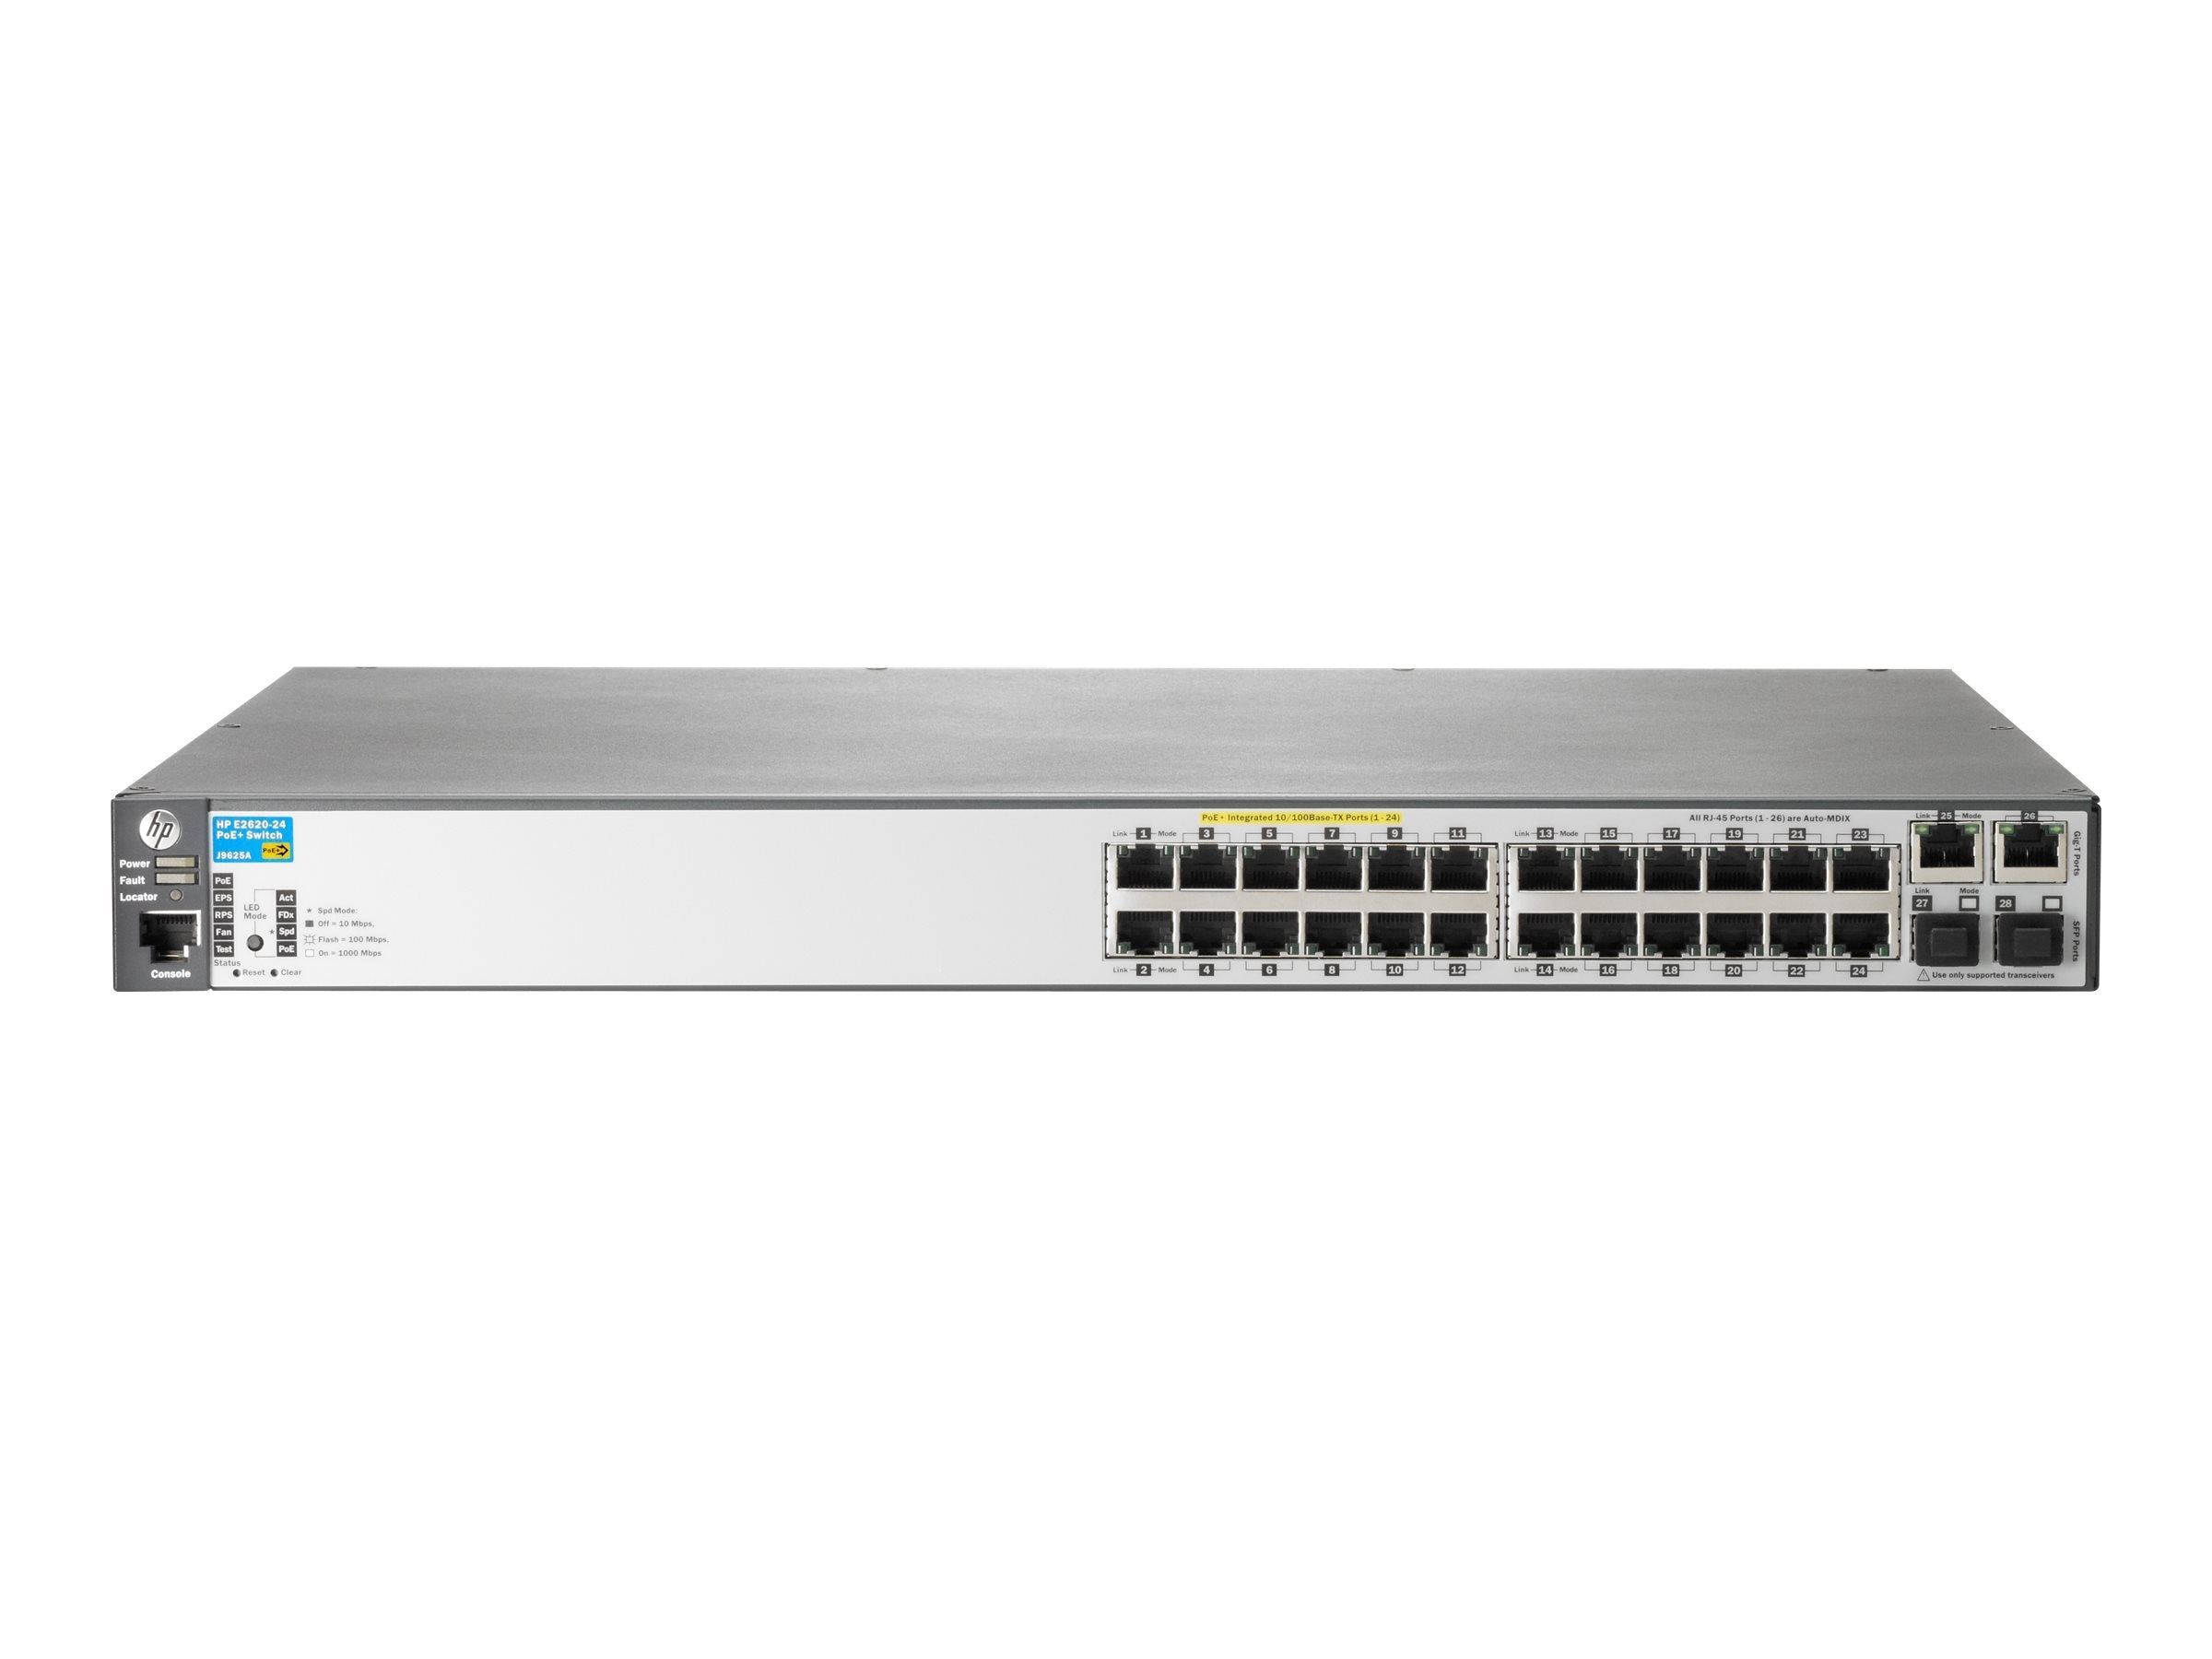 HPE 2620-24-PoE+ Switch